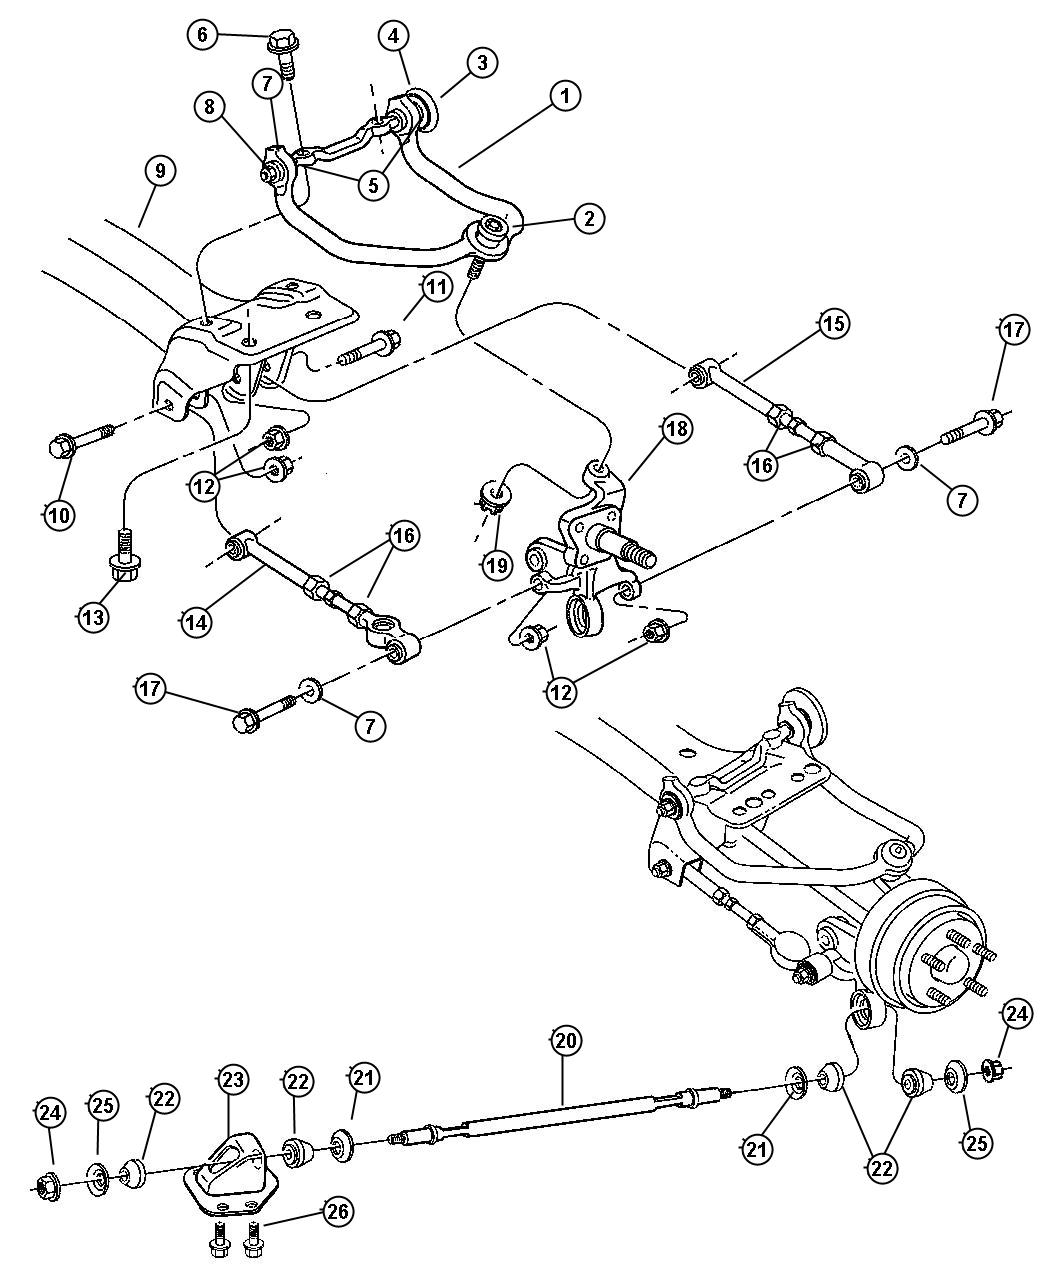 04 dodge stratus suspension diagram